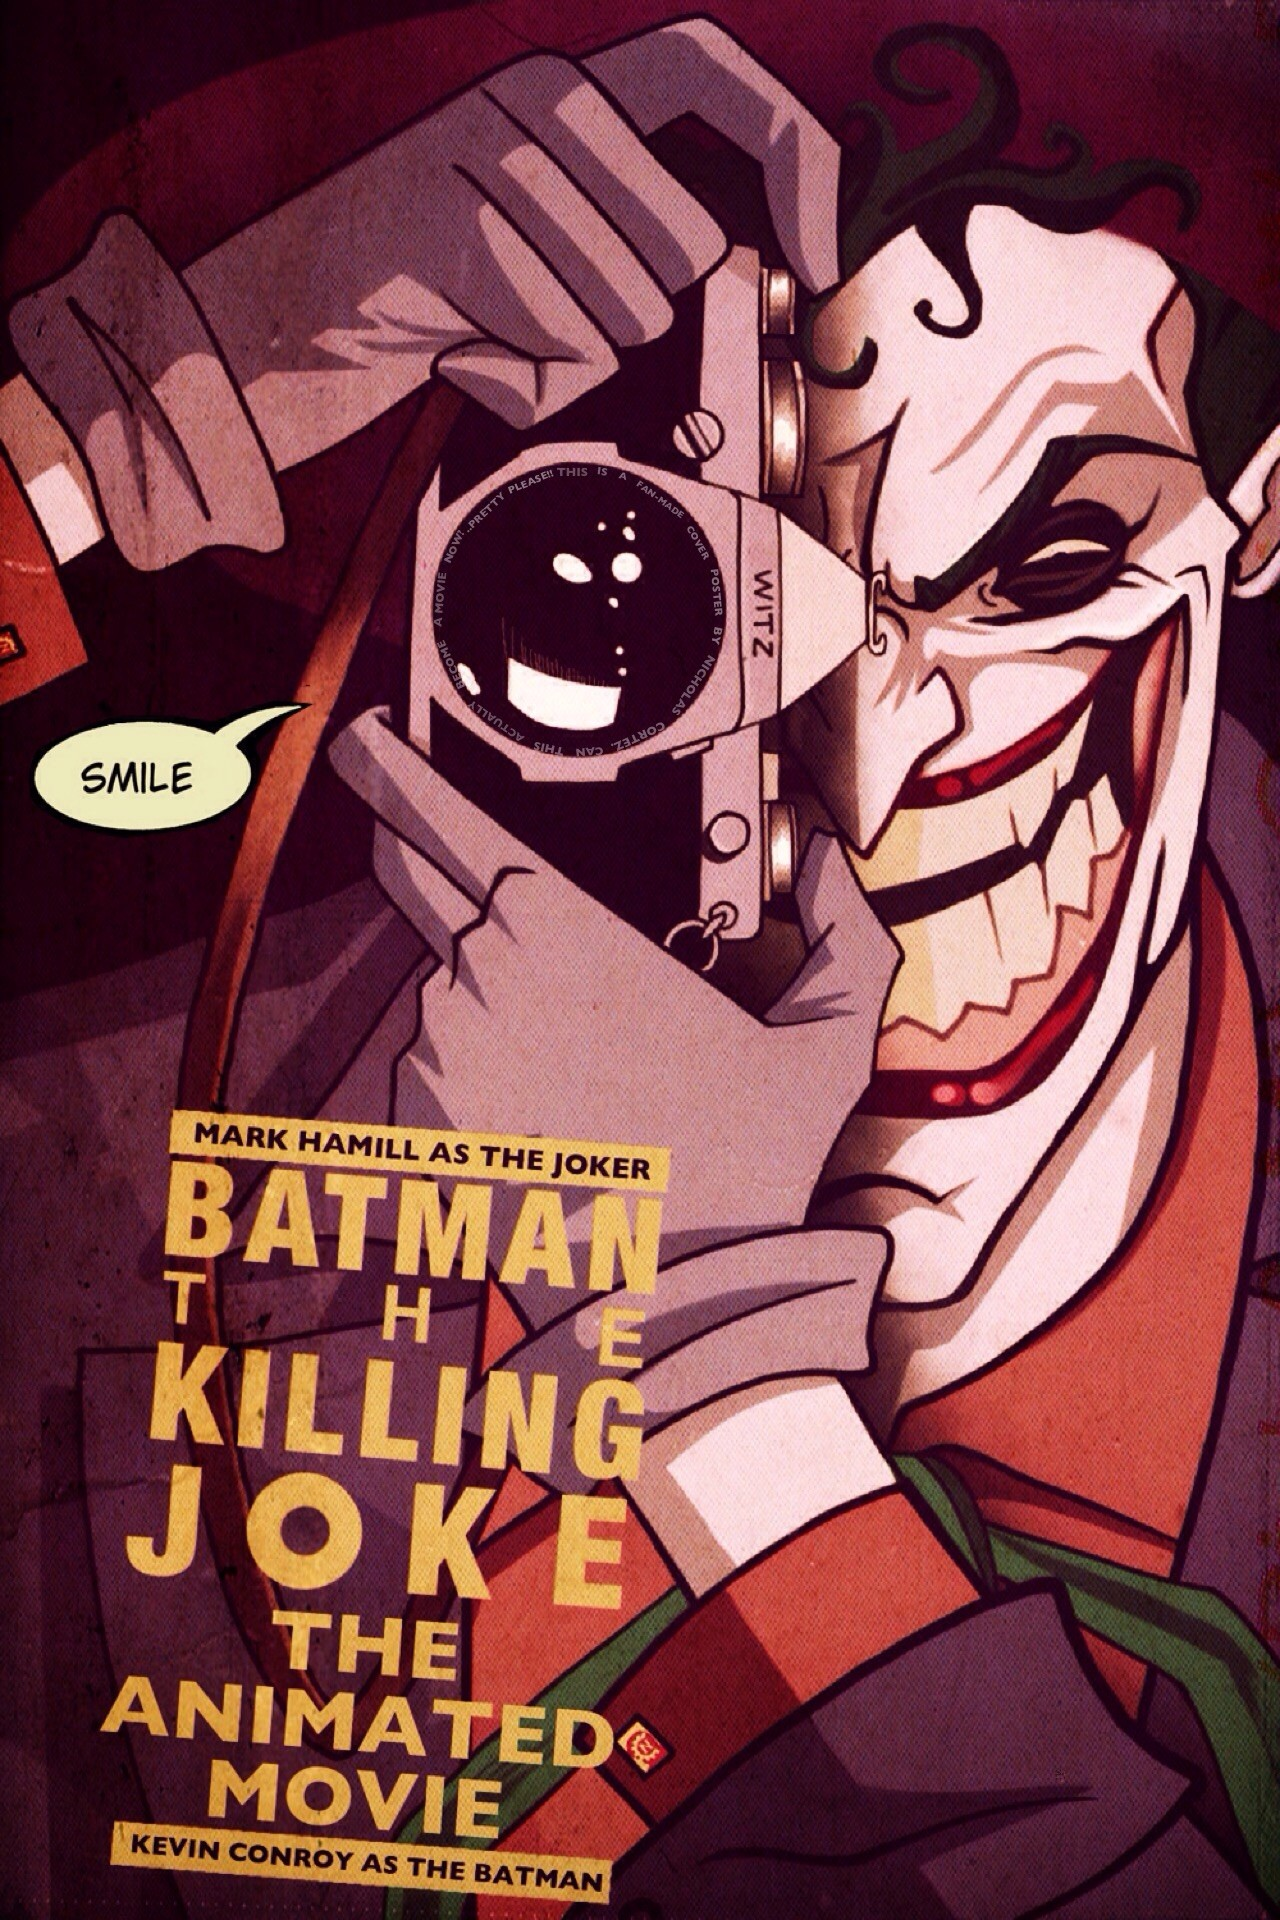 1280x1920 ... FatherTimeIndustries Batman the Killing Joke Animated Movie by  FatherTimeIndustries